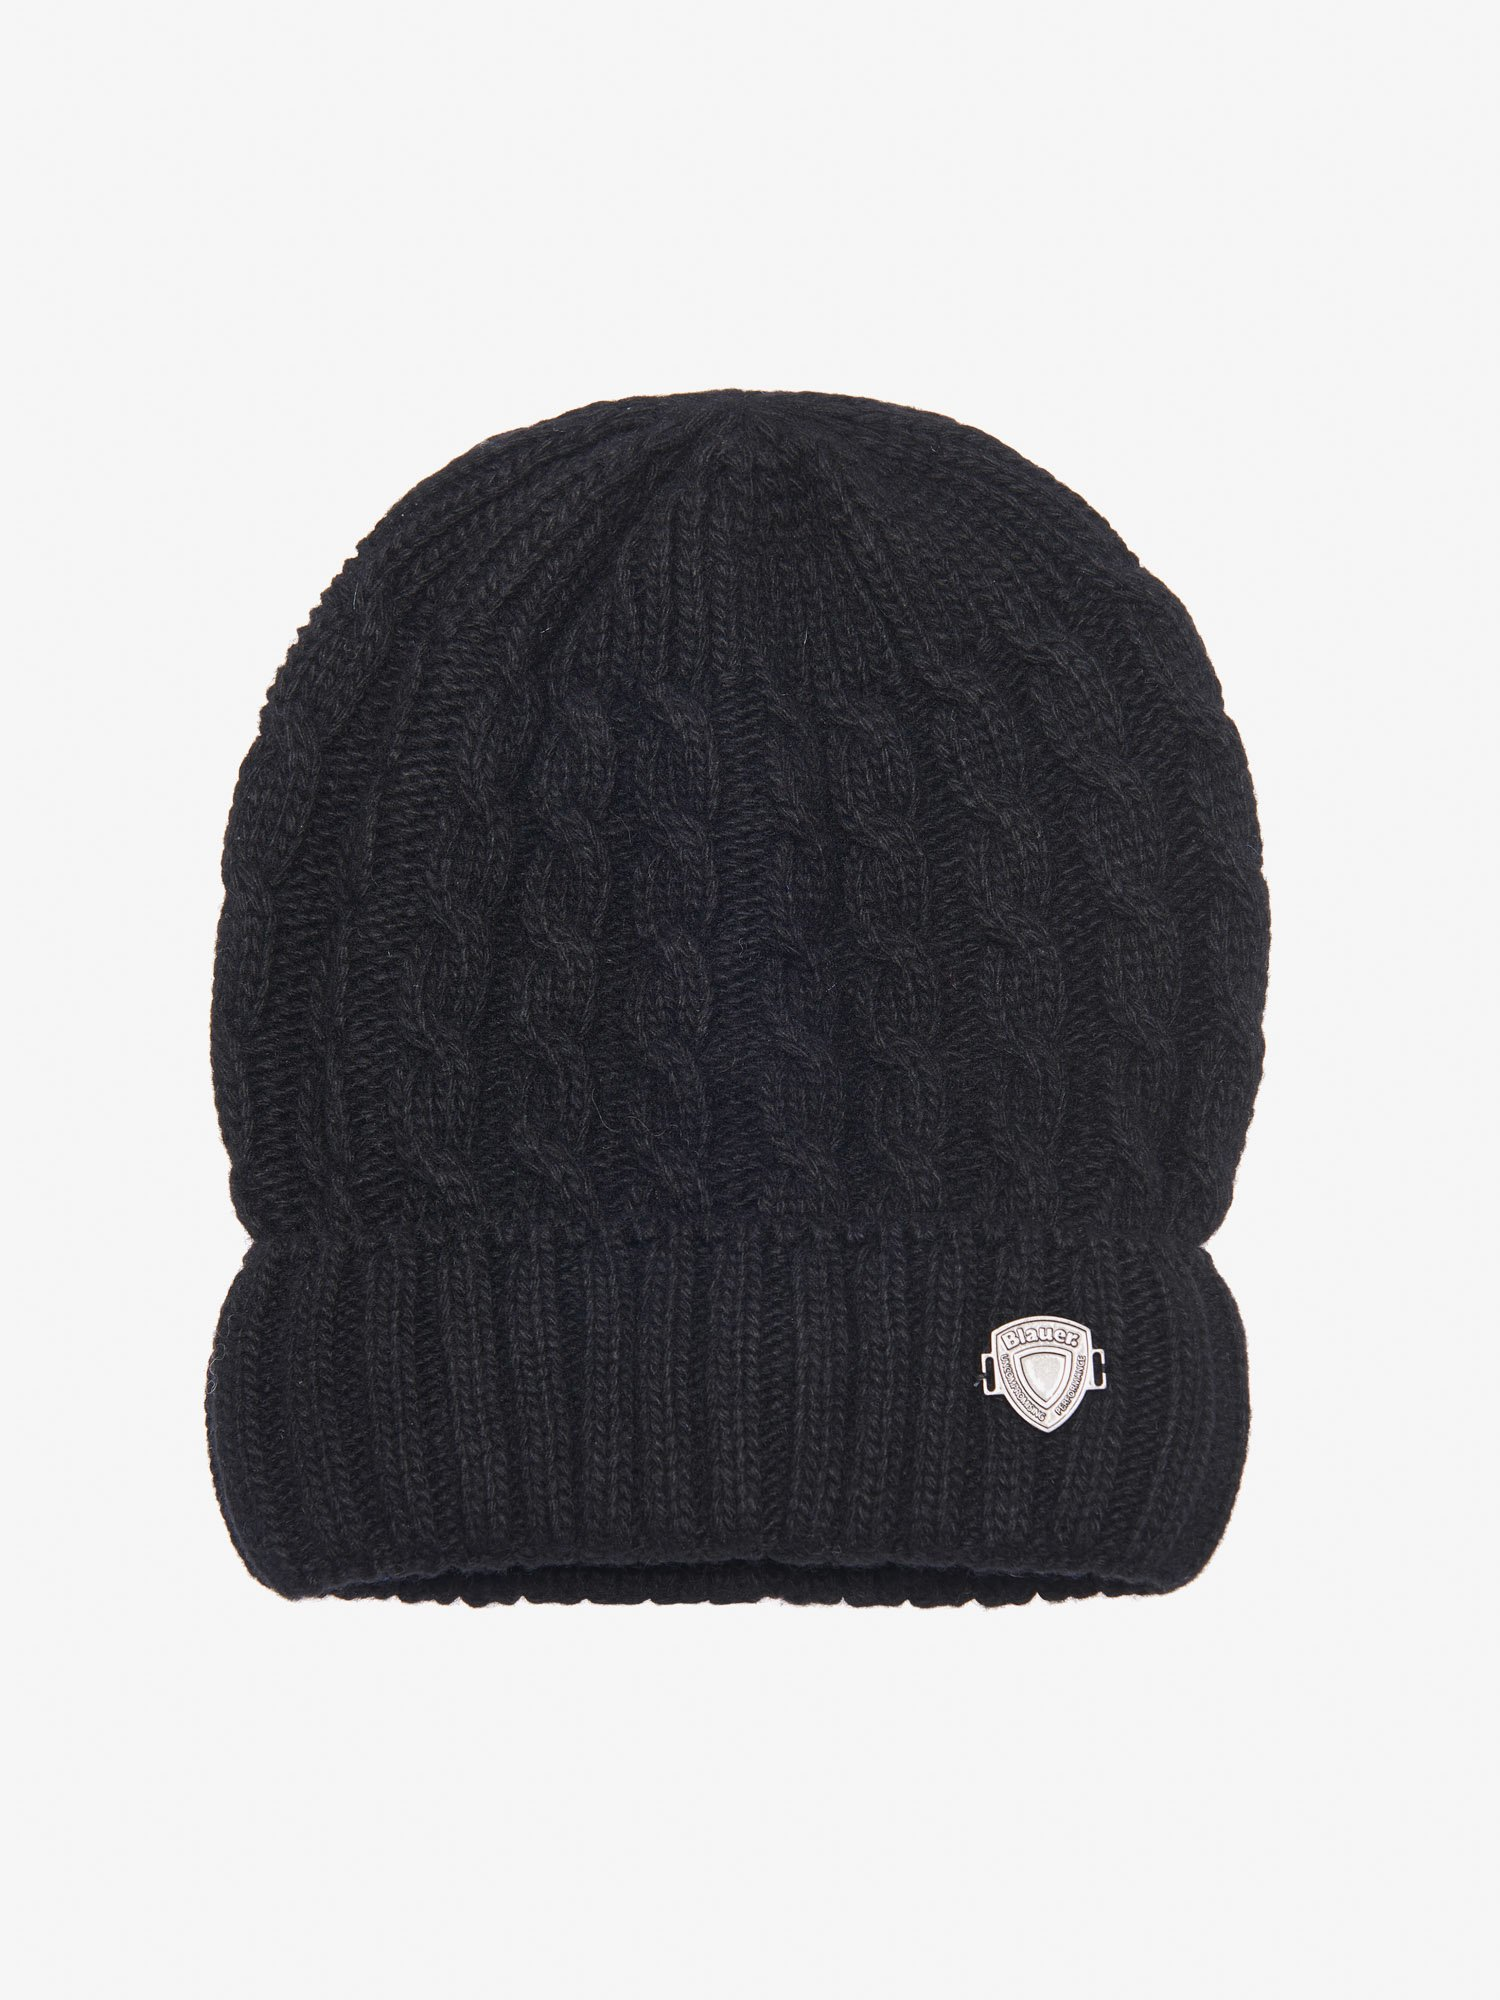 JUNIOR CAP WITH CUFF - Blauer